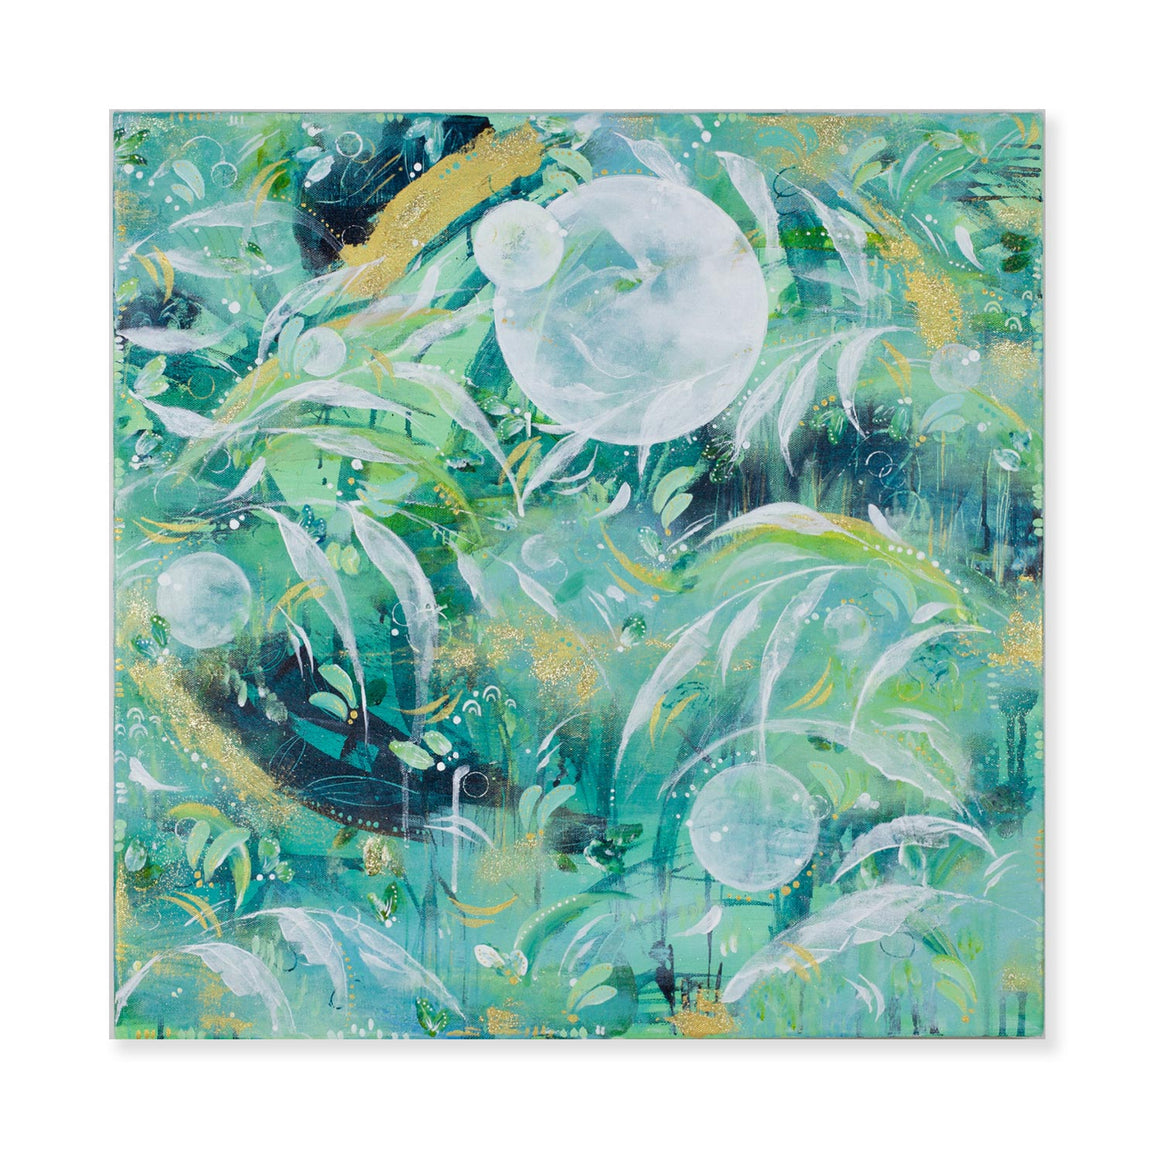 Kelpforest and Moonbeams| Kelp Forest Painting 60cm x 60cm